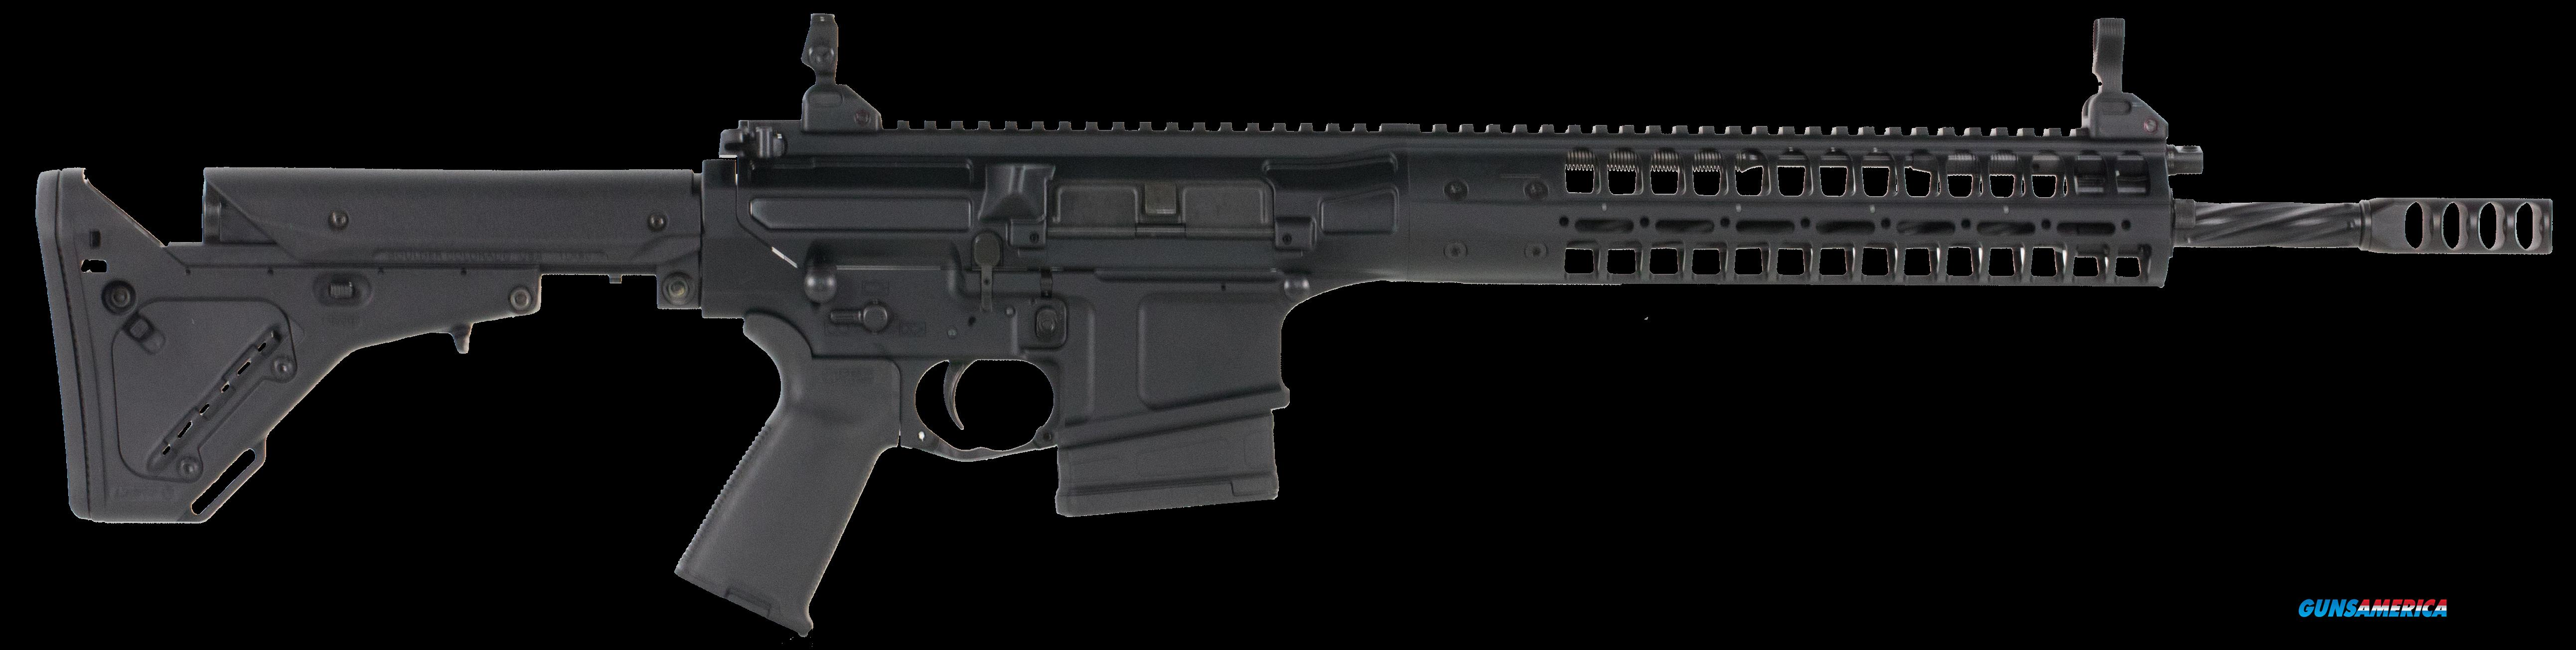 LWRC REPRMKIIR7BF R.E.P.R. Spiral Fluted *CA Compliant* Semi-Automatic 308 Winchester/7.62 NATO  Guns > Rifles > L Misc Rifles